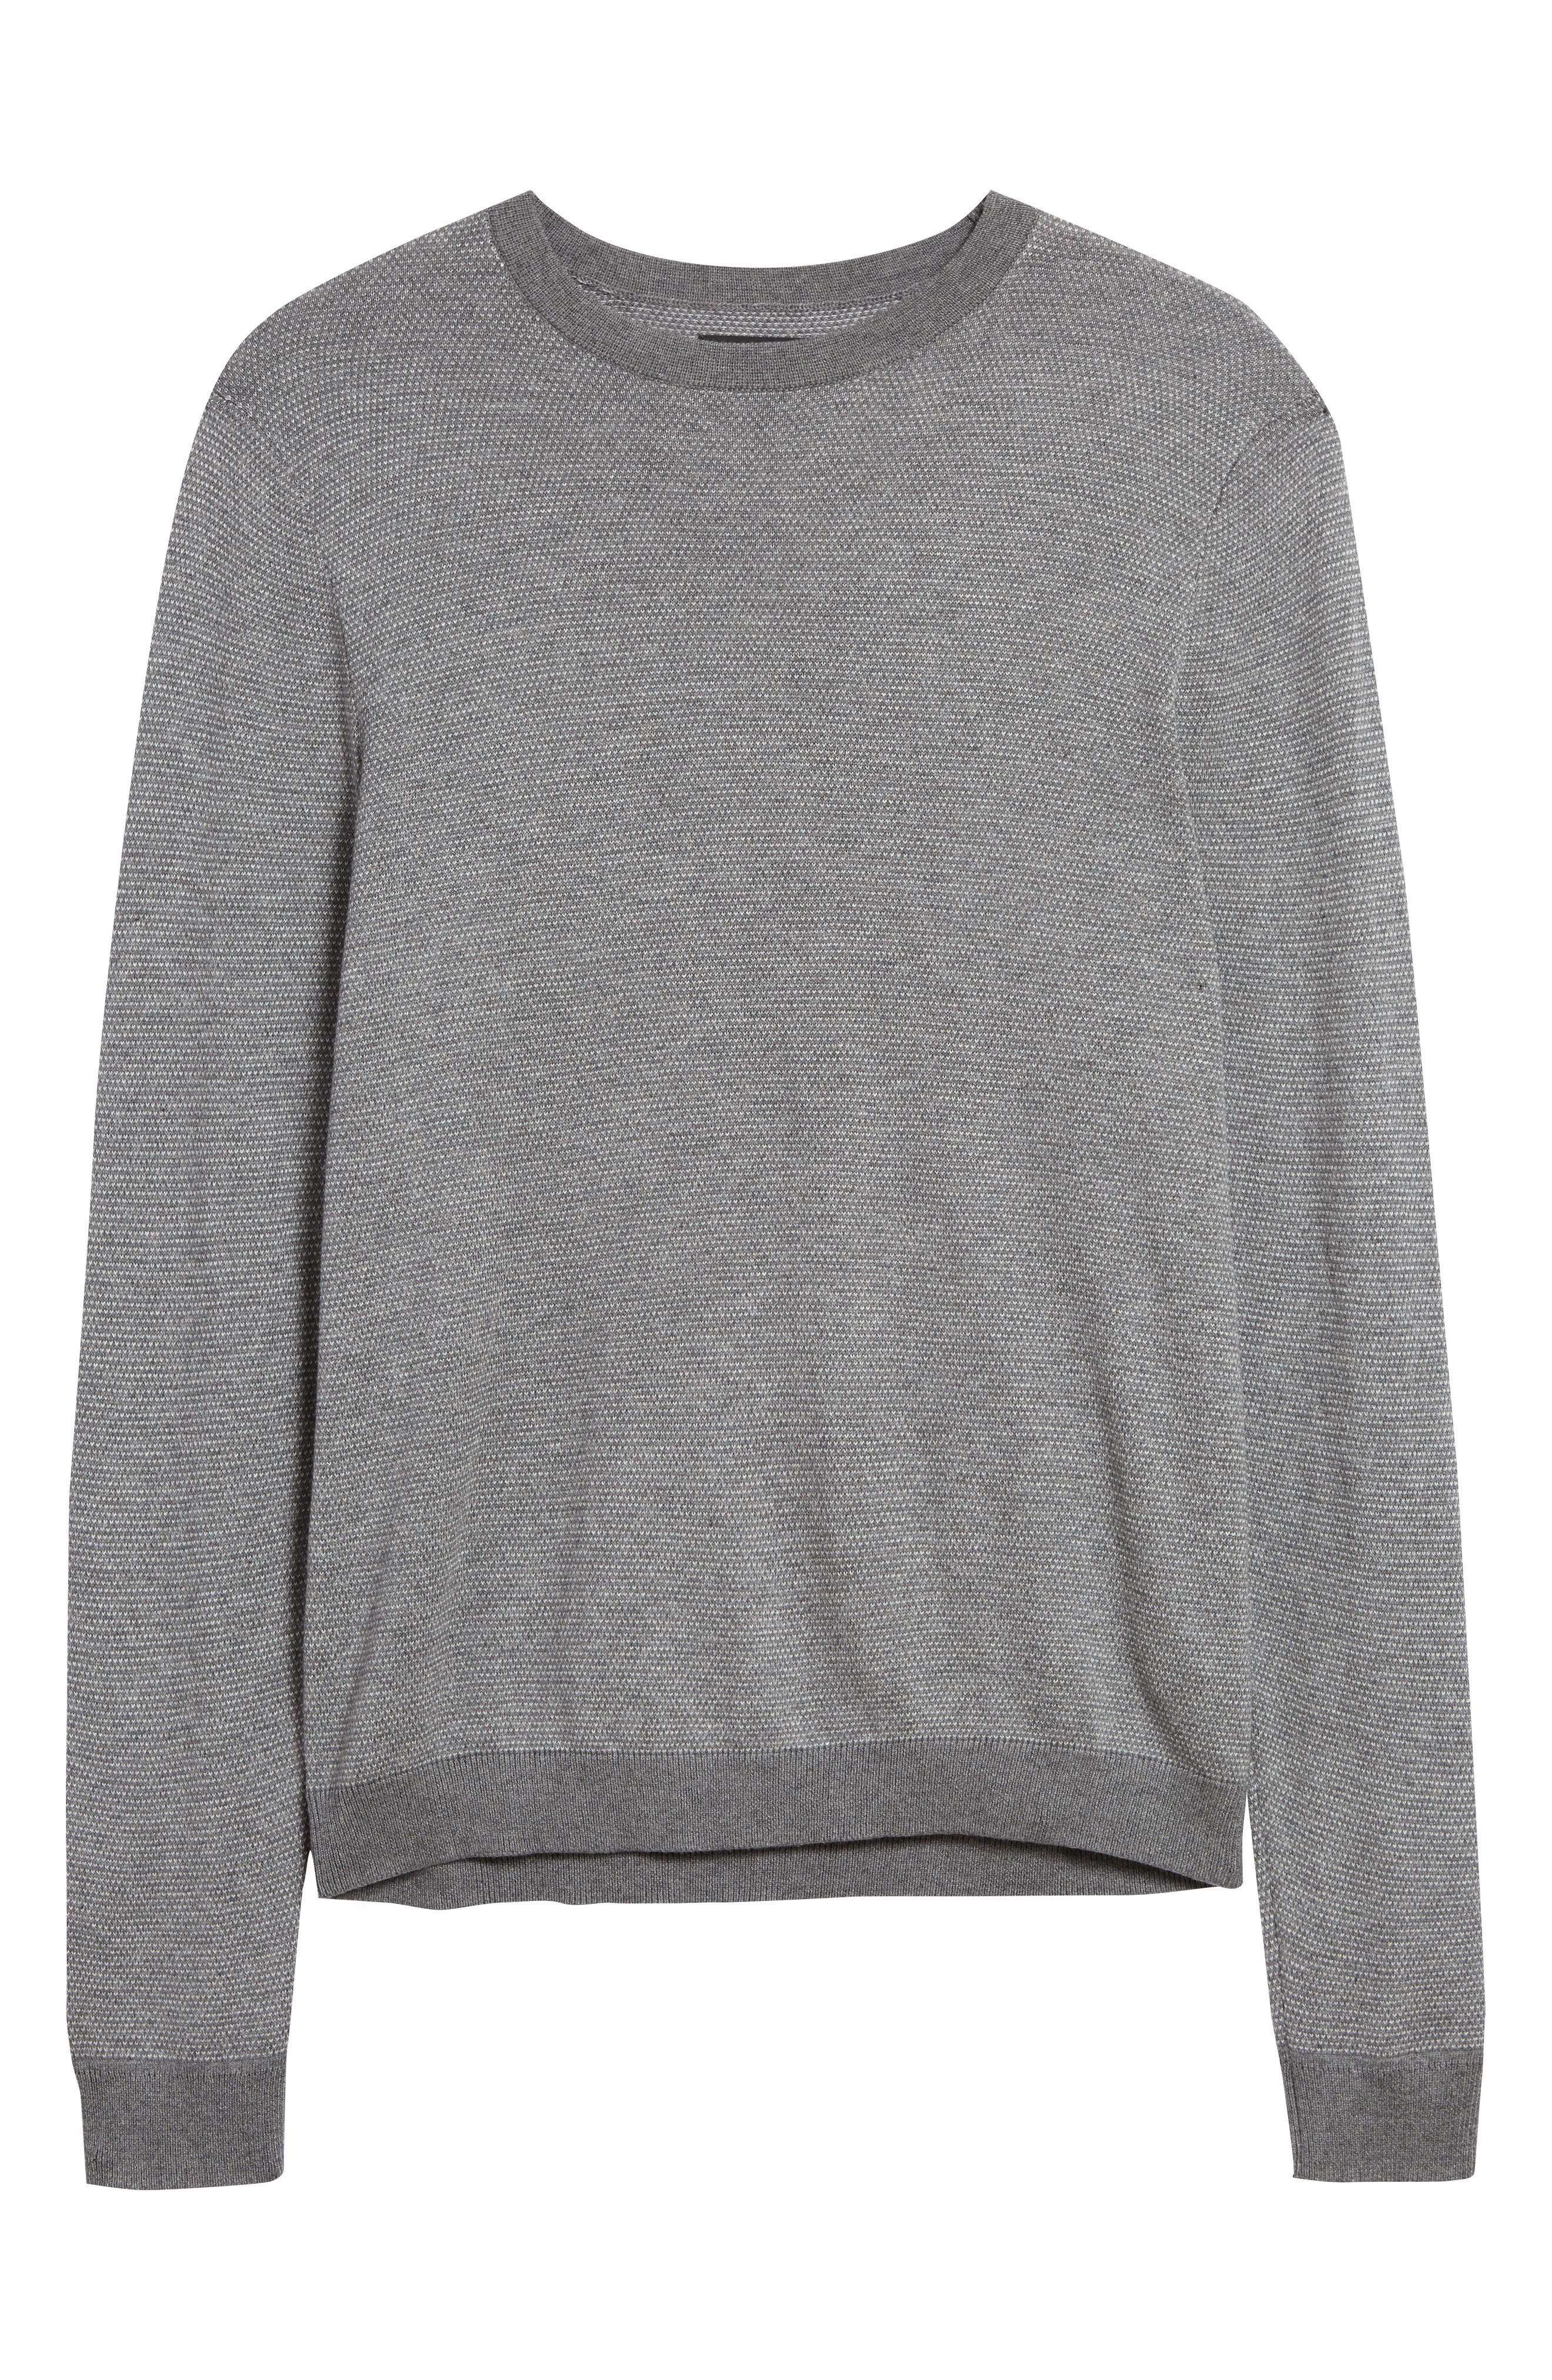 A soft cotton-blend sweater in a birdseye stitch is a refined style staple for any day of the week. Style Name: Nordstrom Men\\\'s Shop Birdseye Crewneck Sweater. Style Number: 5990891. Available in stores.